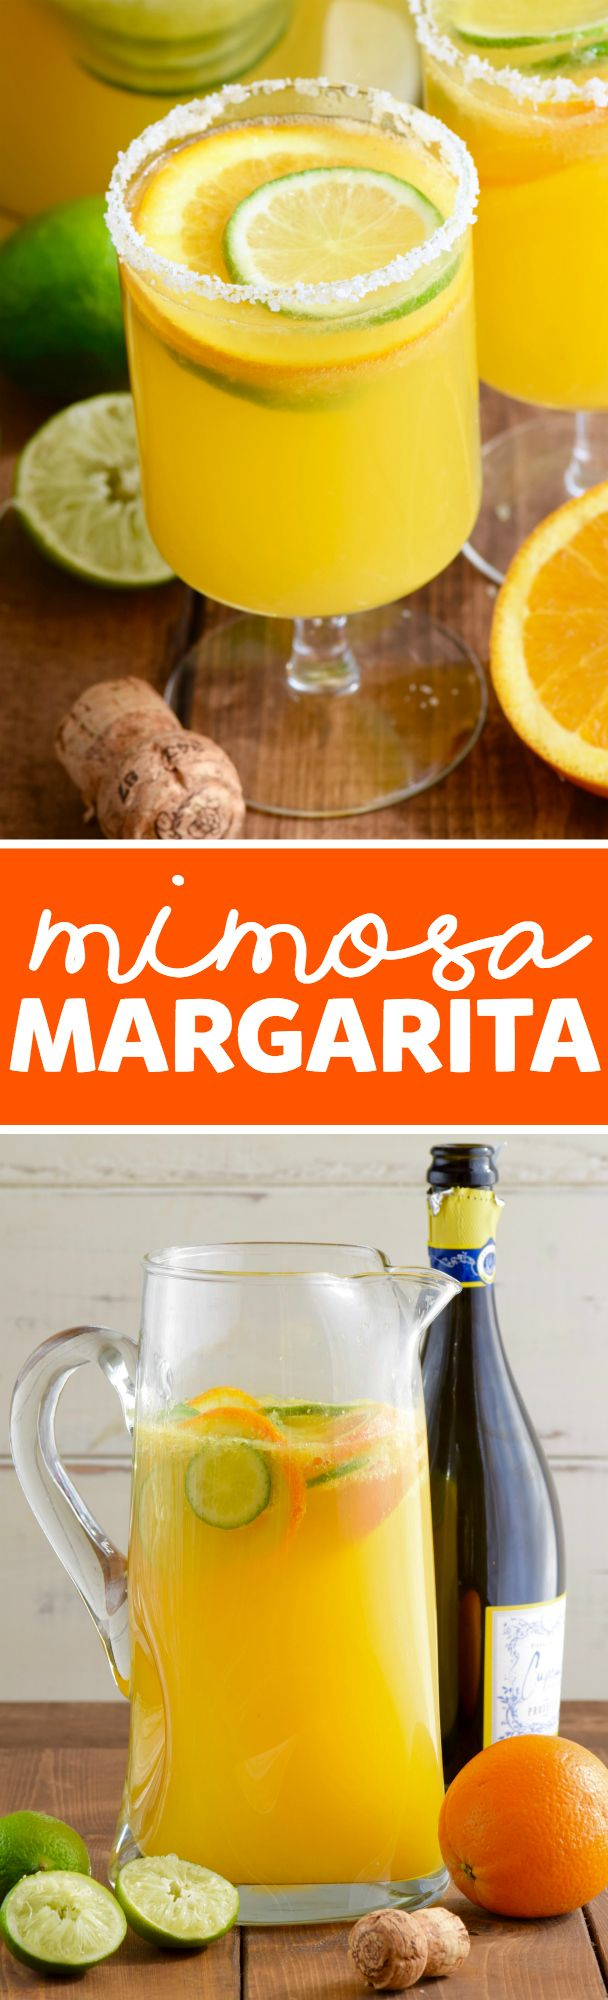 These Mimosa Margaritas are super easy to make. Throw together a giant pitcher in a snap and add something super delicious to your brunch!: